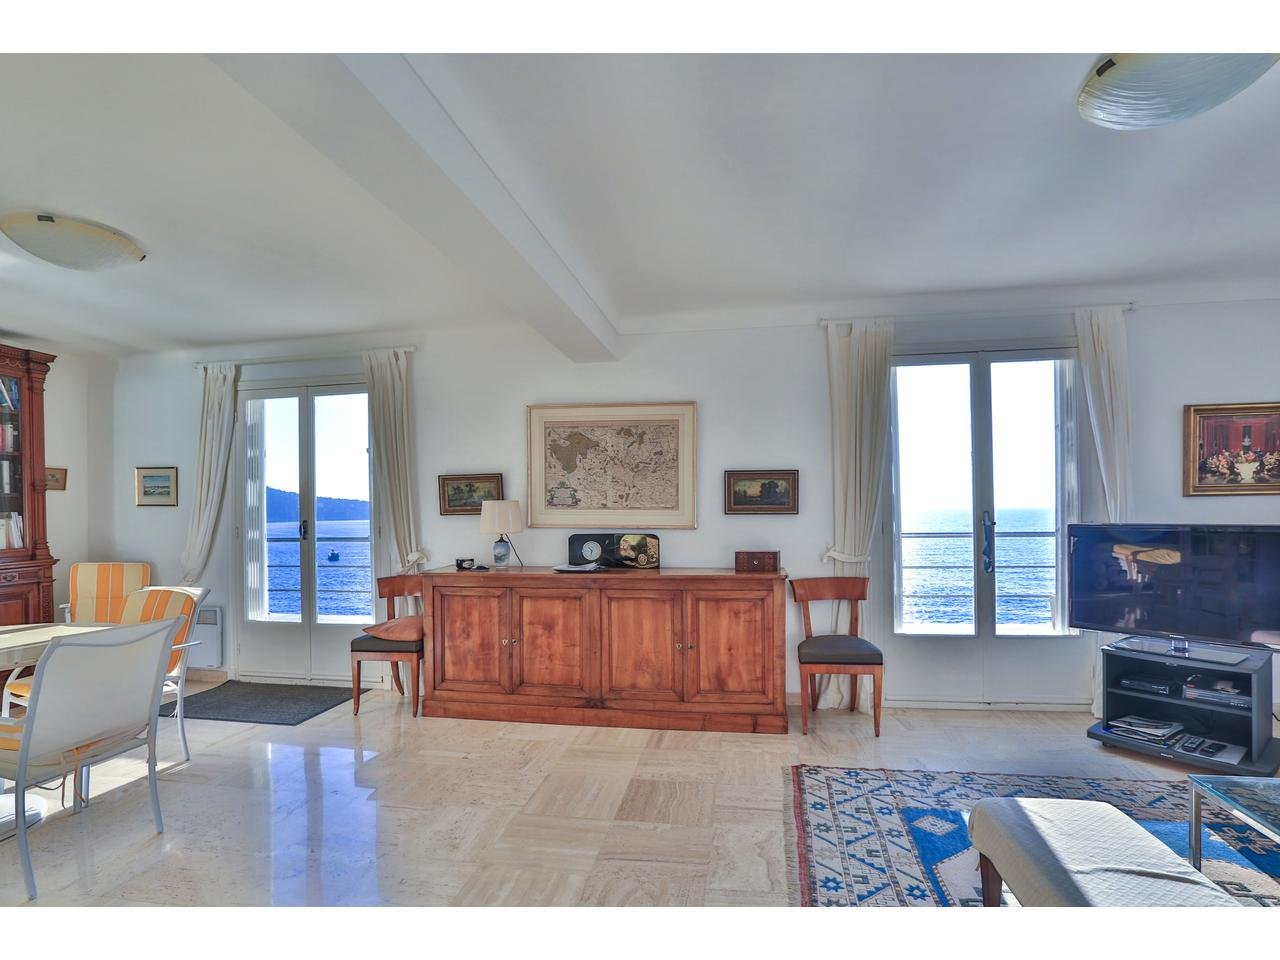 Maison  5 Rooms 160m2  for sale  4 500 000 €